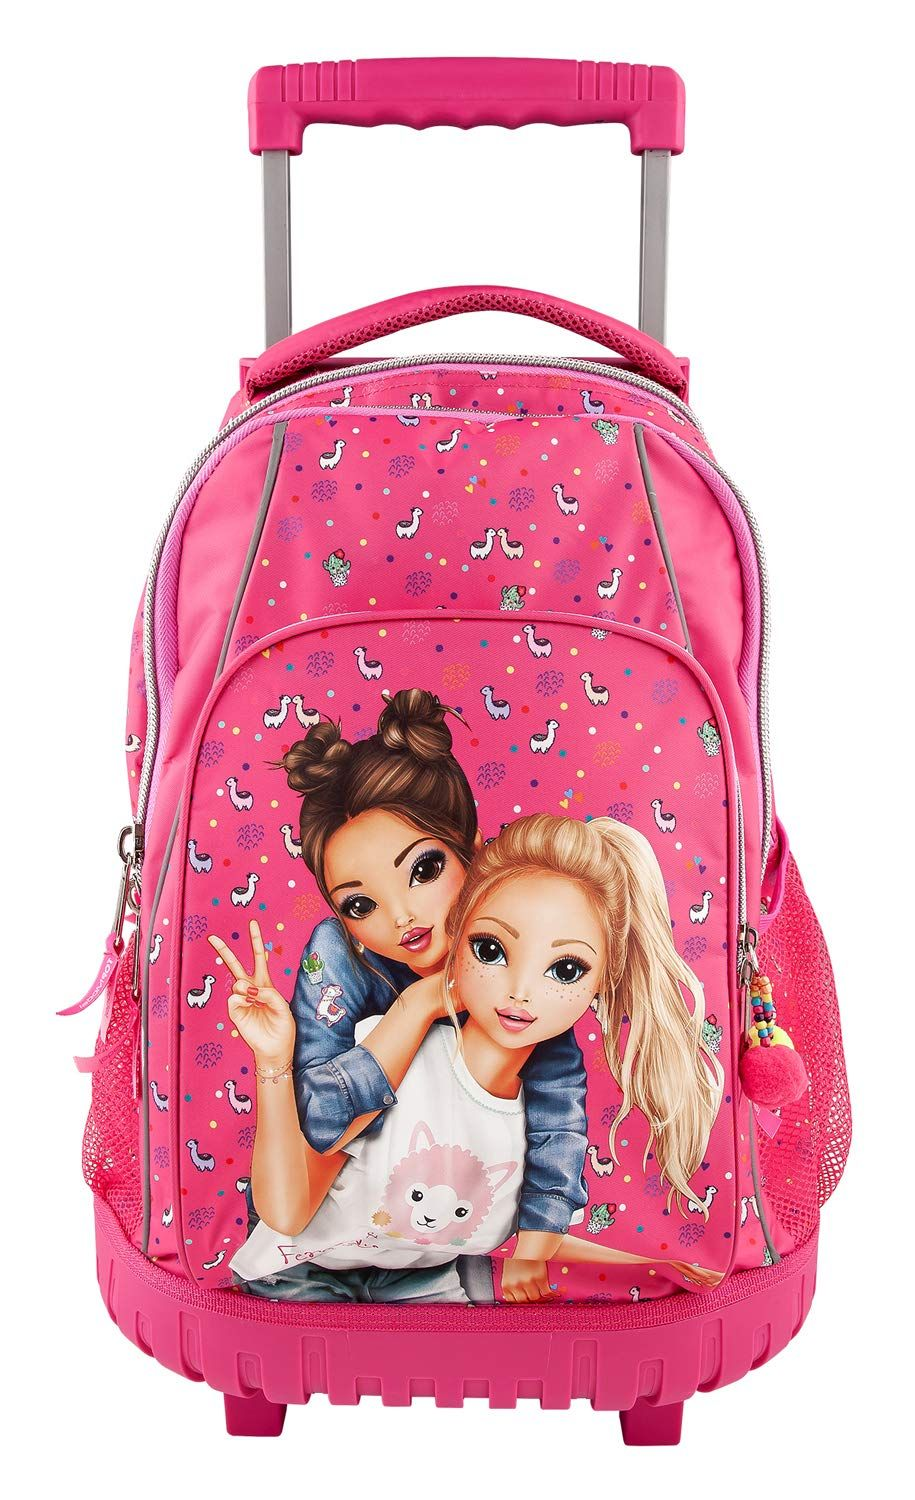 3b3e8c72095d8 Depesche 10360 School Rucksack Trolley Top Model Pink Trolley backpack with  two wheels and telescopic handle Design  TOPModel Main compartment